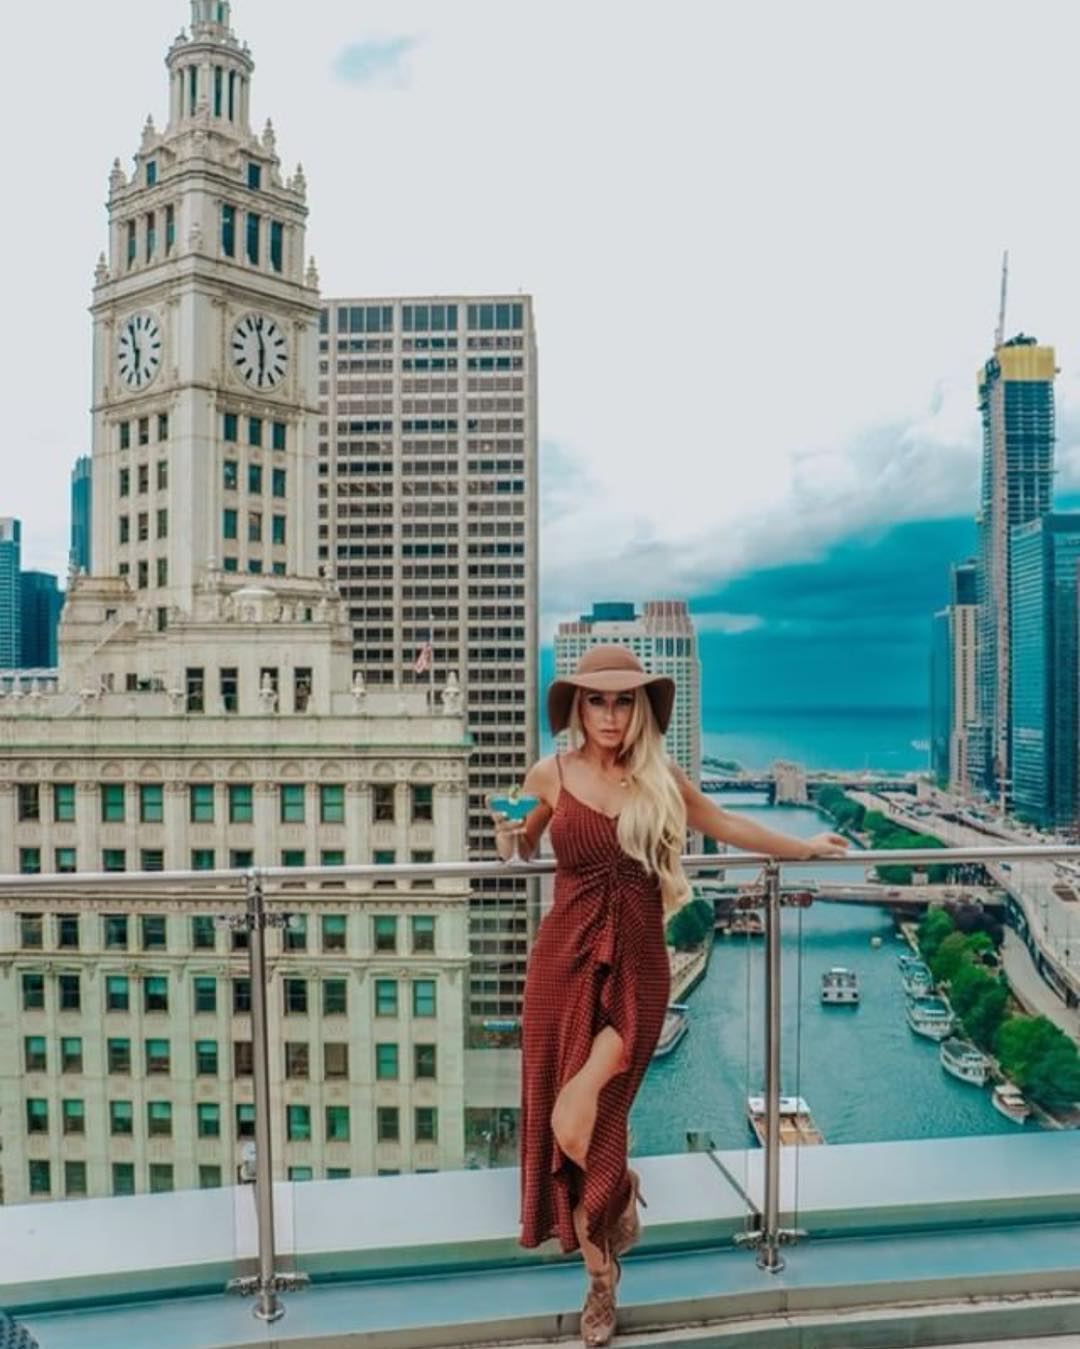 Spaghetti Strap Midi Dress With Floppy Hat And Ankle Boots For Boho Ladies 2019